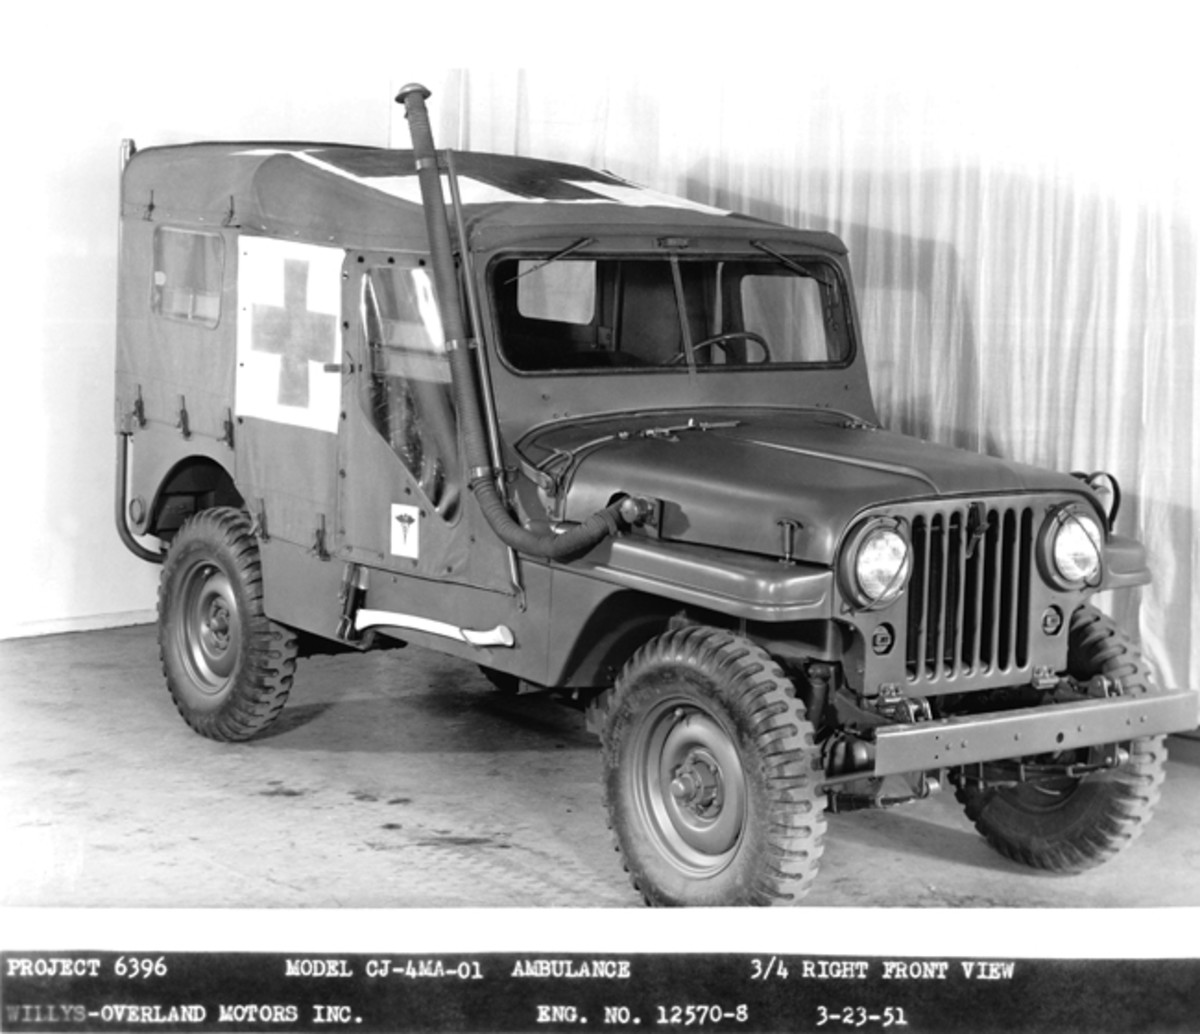 Willys-Overland factory photo.